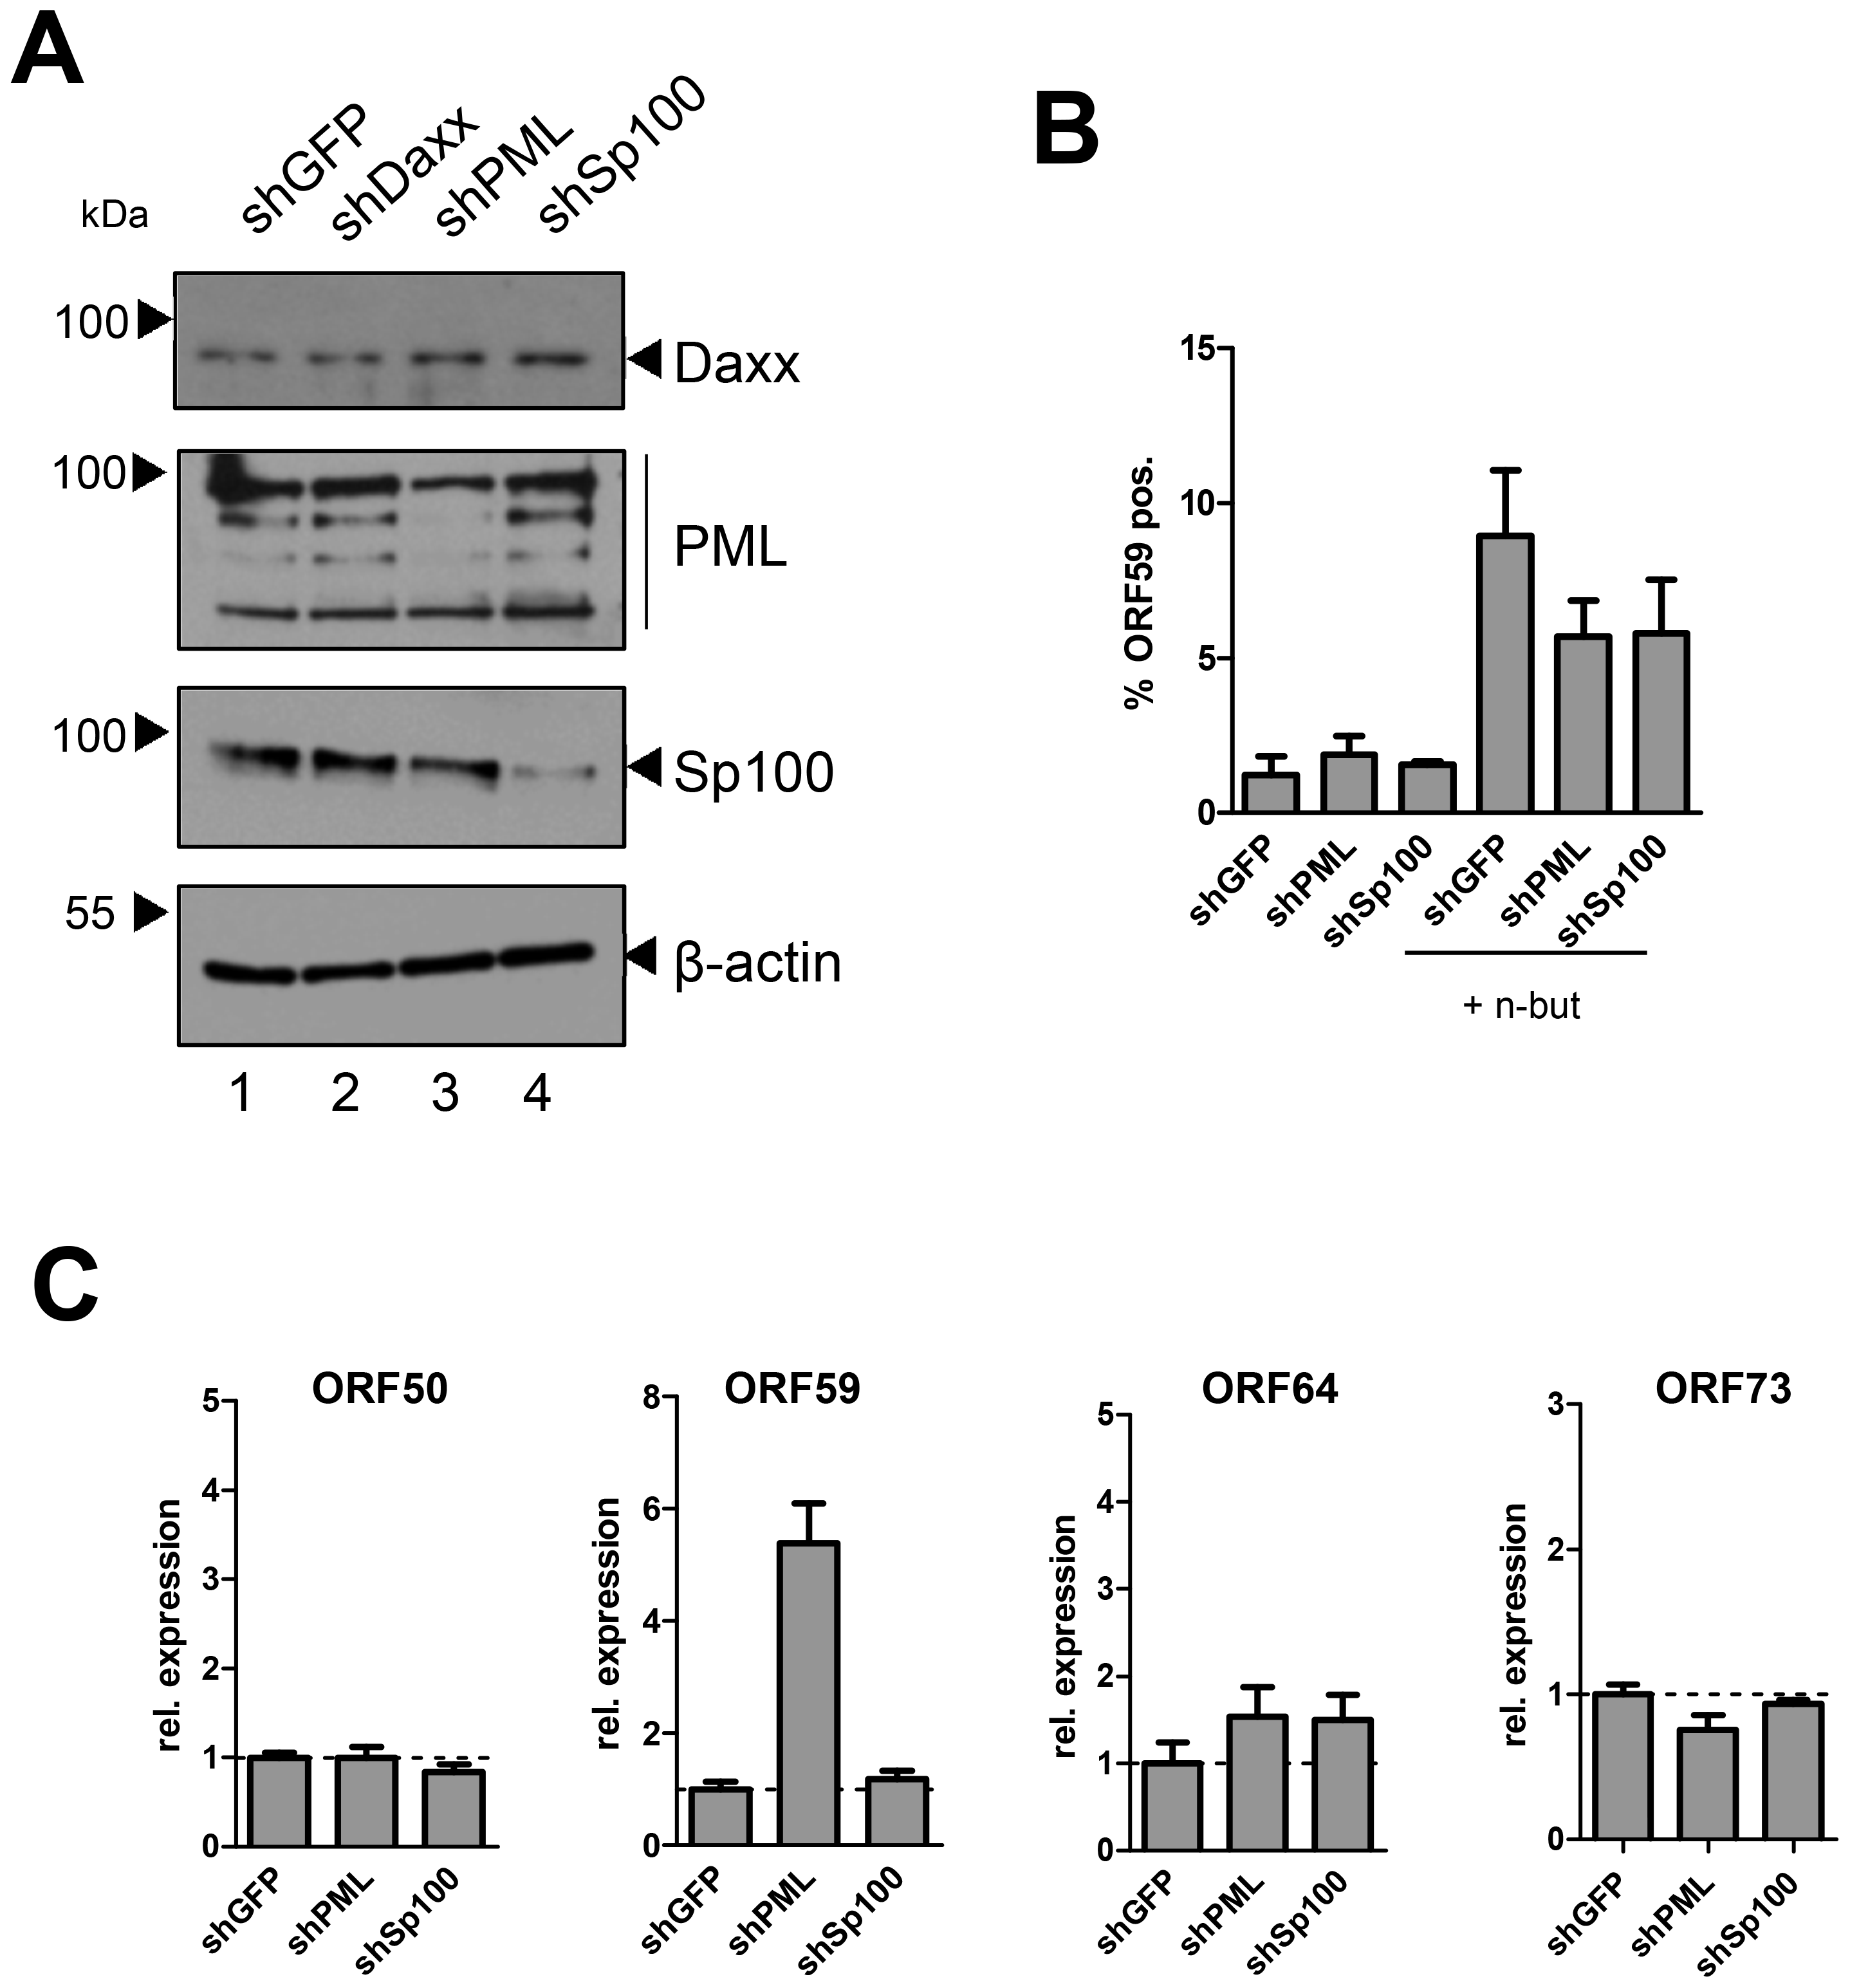 Depletion of PML or Sp100 does not interfere with latency establishment in HUVEC cells.